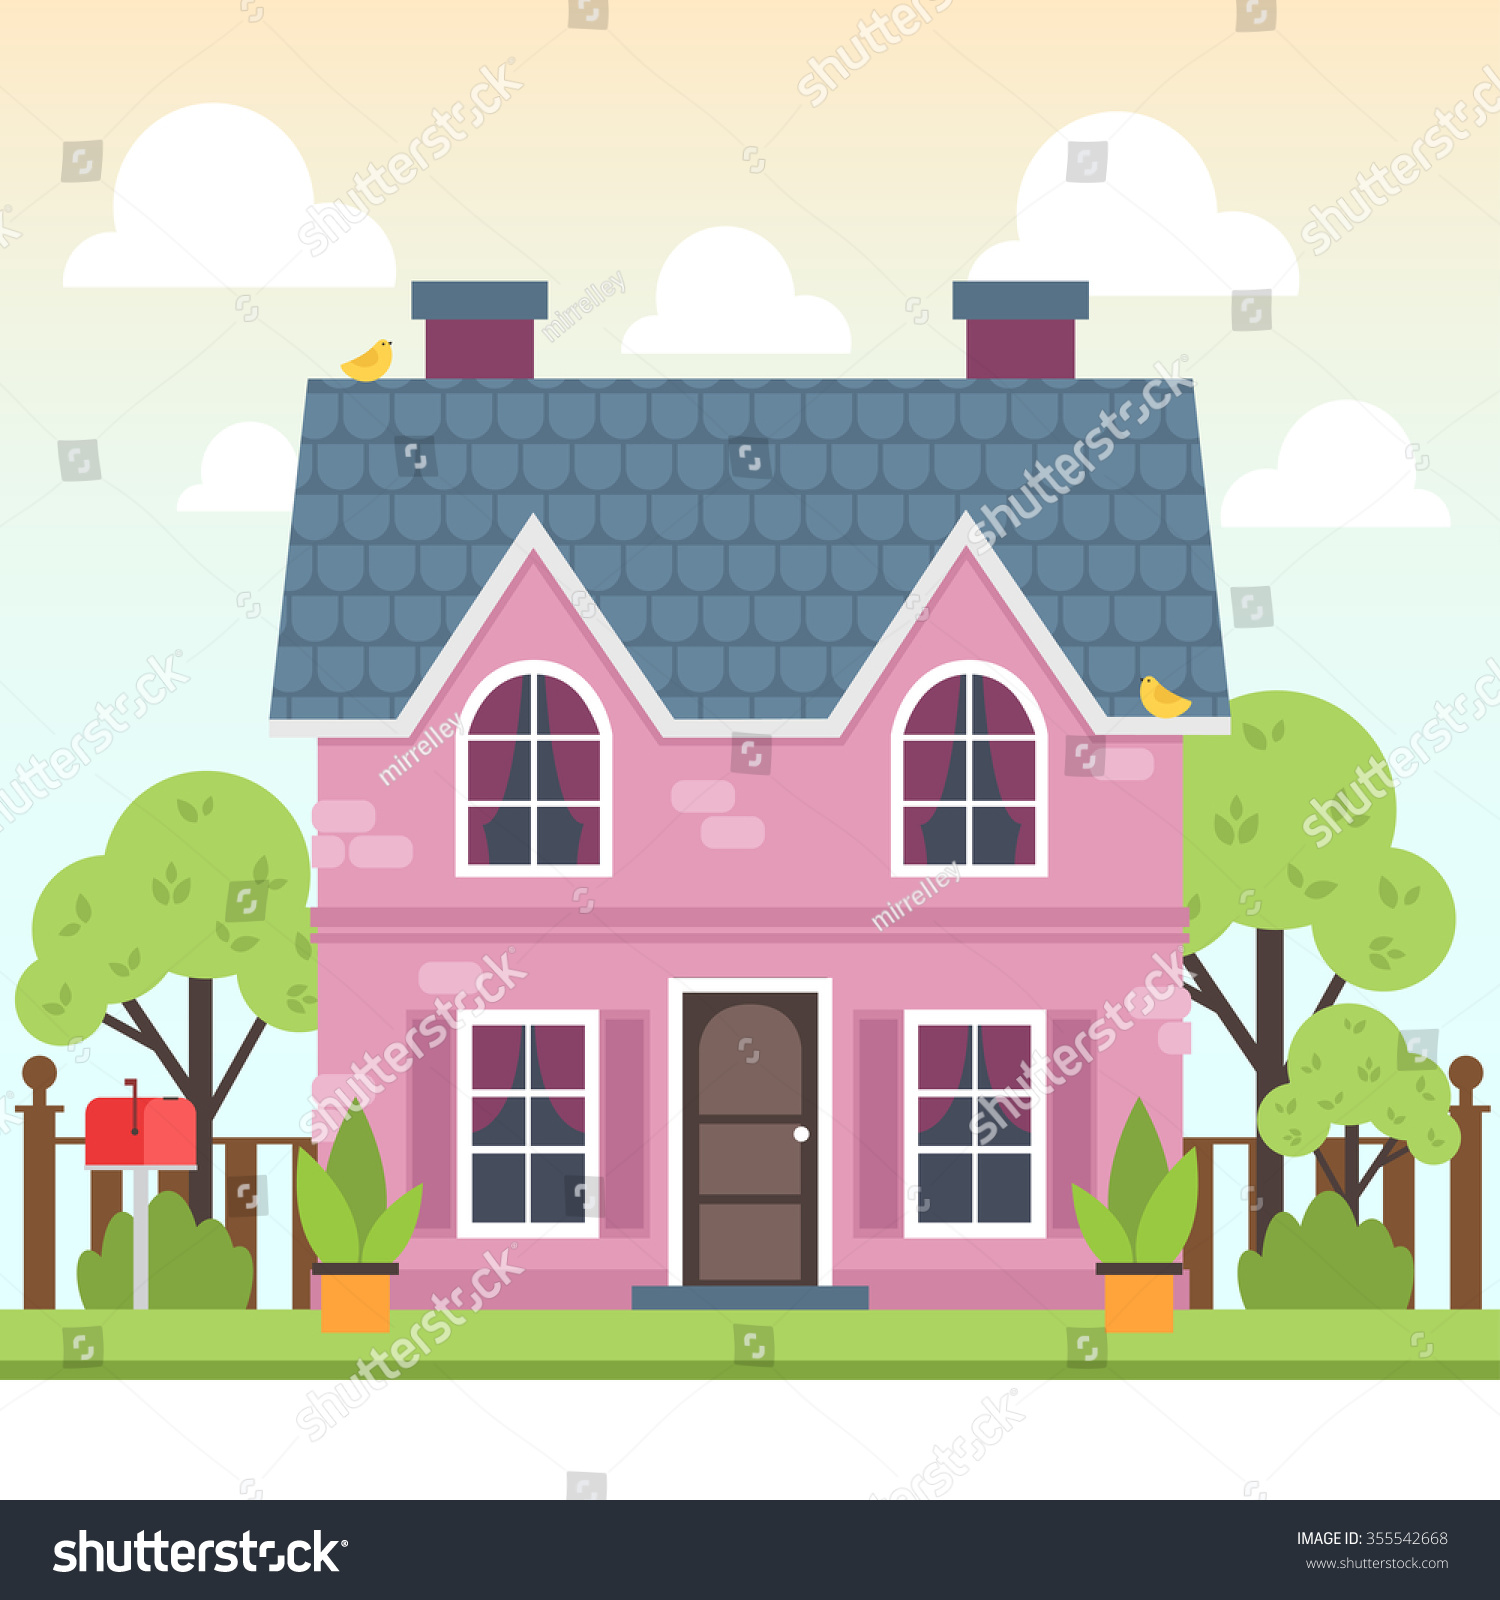 Illustration Cute Colorful House Trees Bird Stock Vector